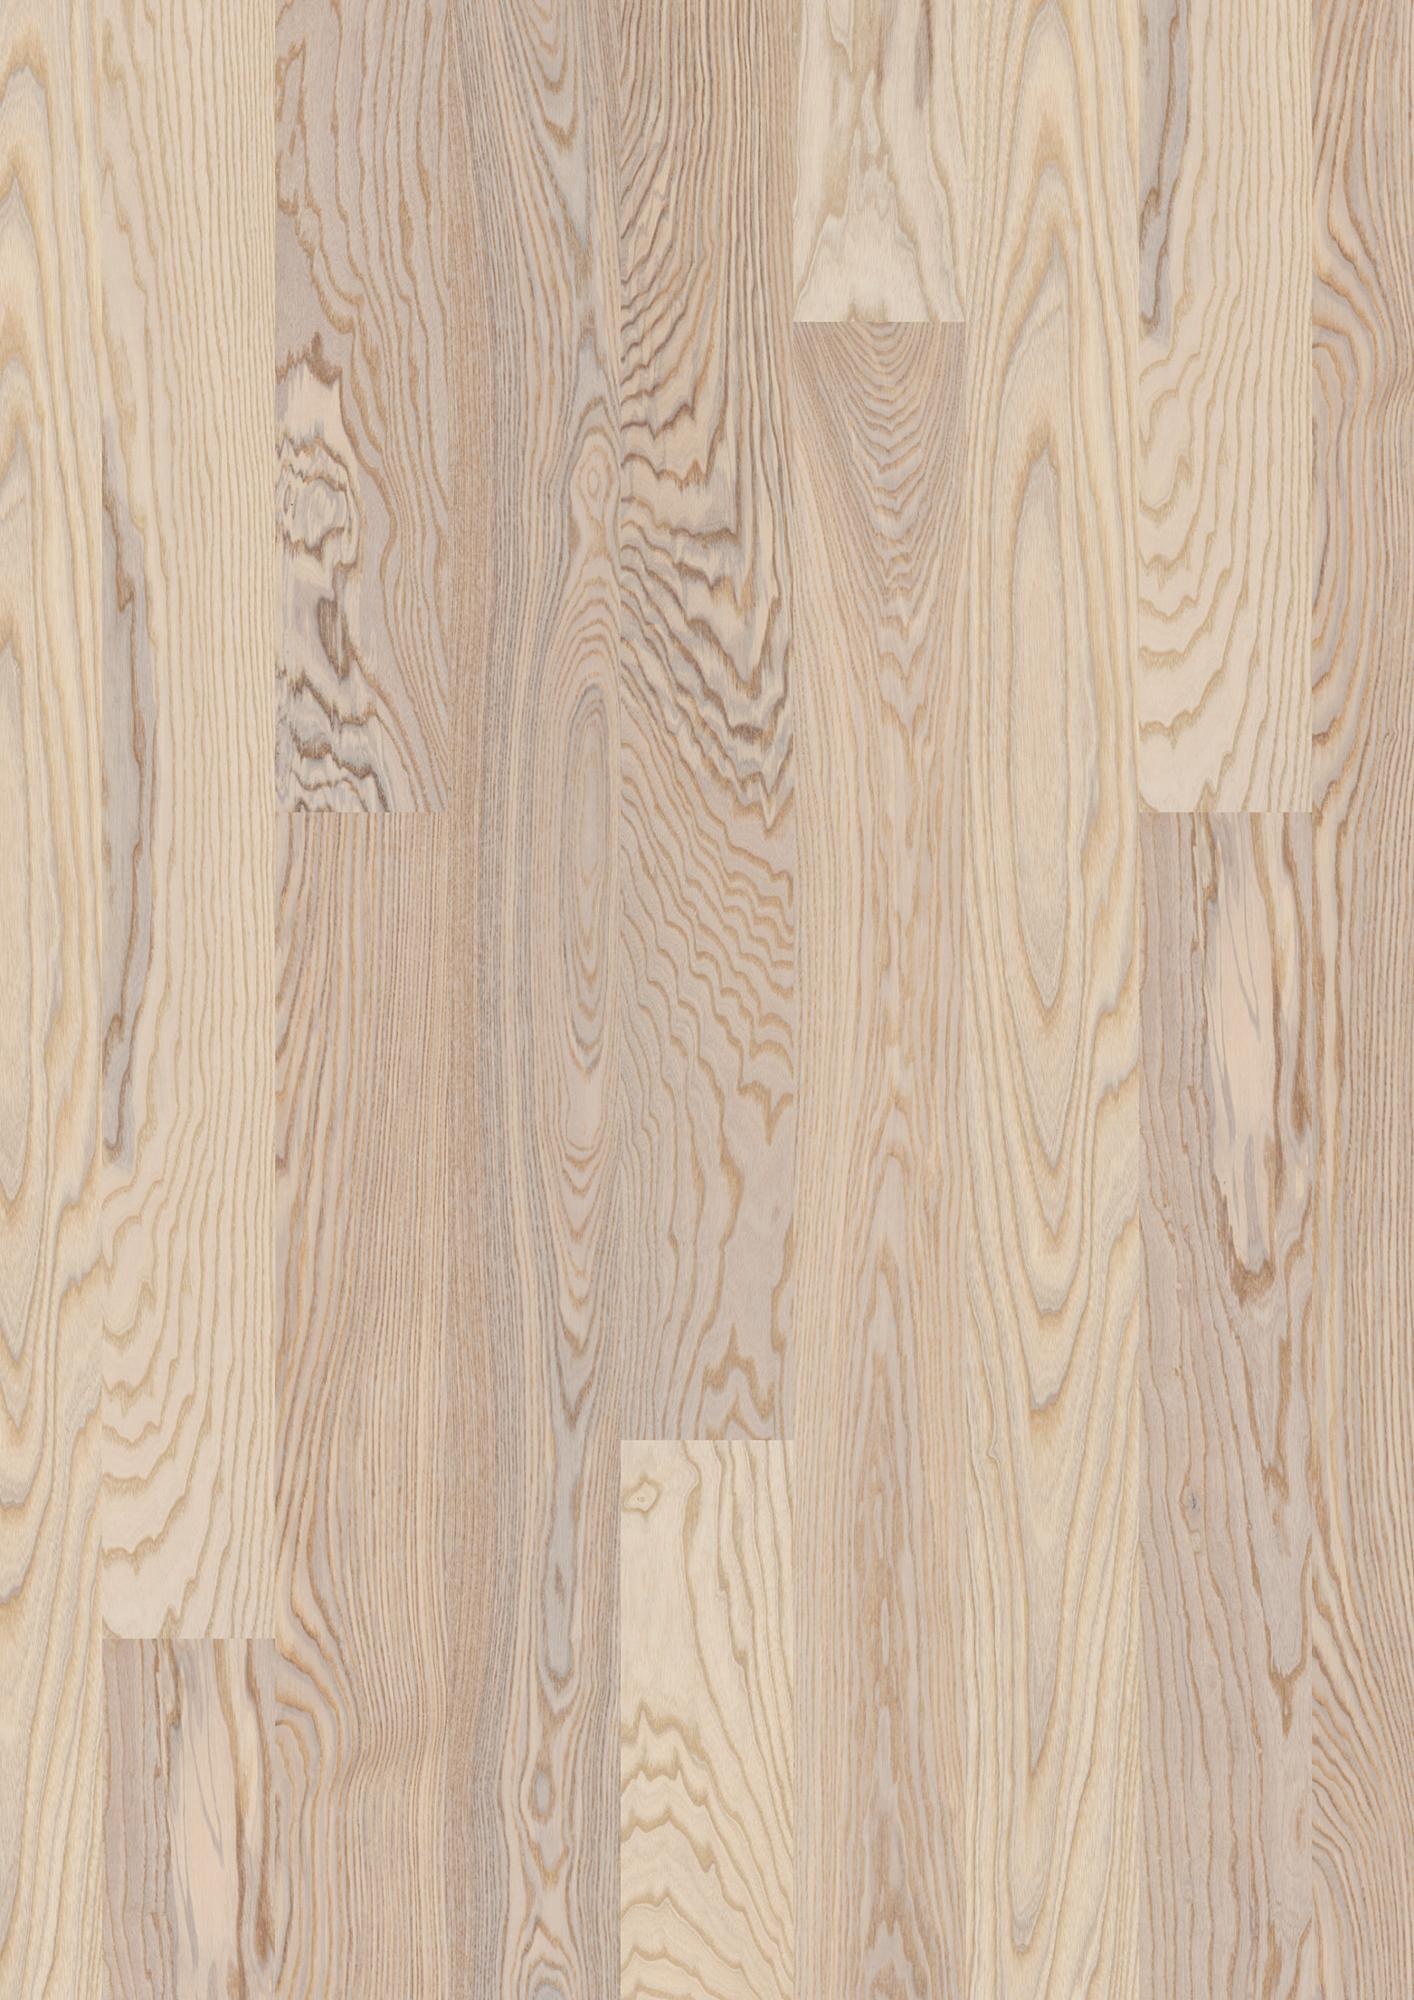 Ash Marcato white, Live Matt lacquer white, Not brushed, Square edged, Plank 138, 14x138x2200mm